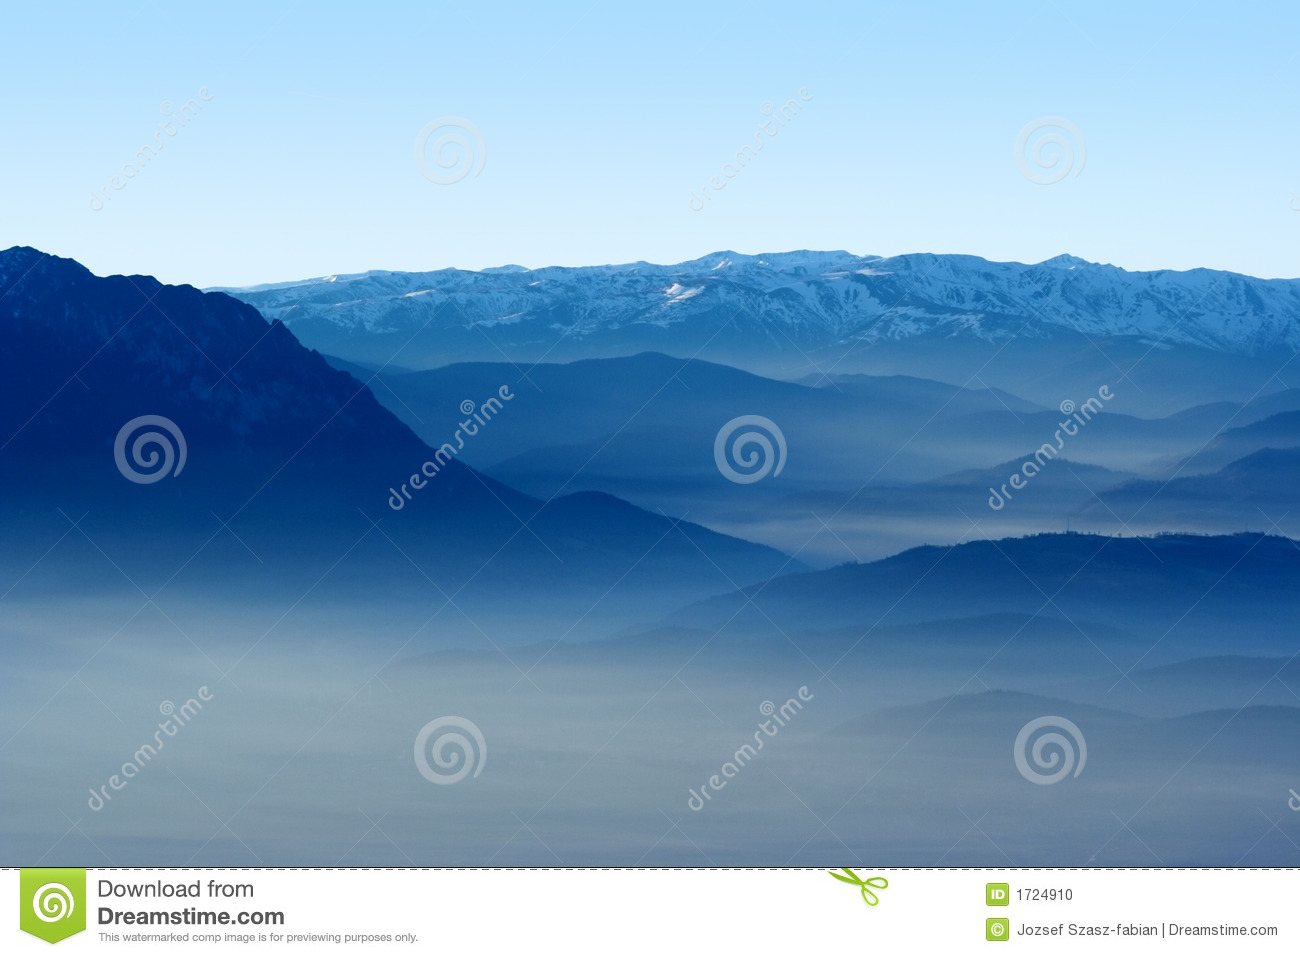 Mountains and valley in the fog